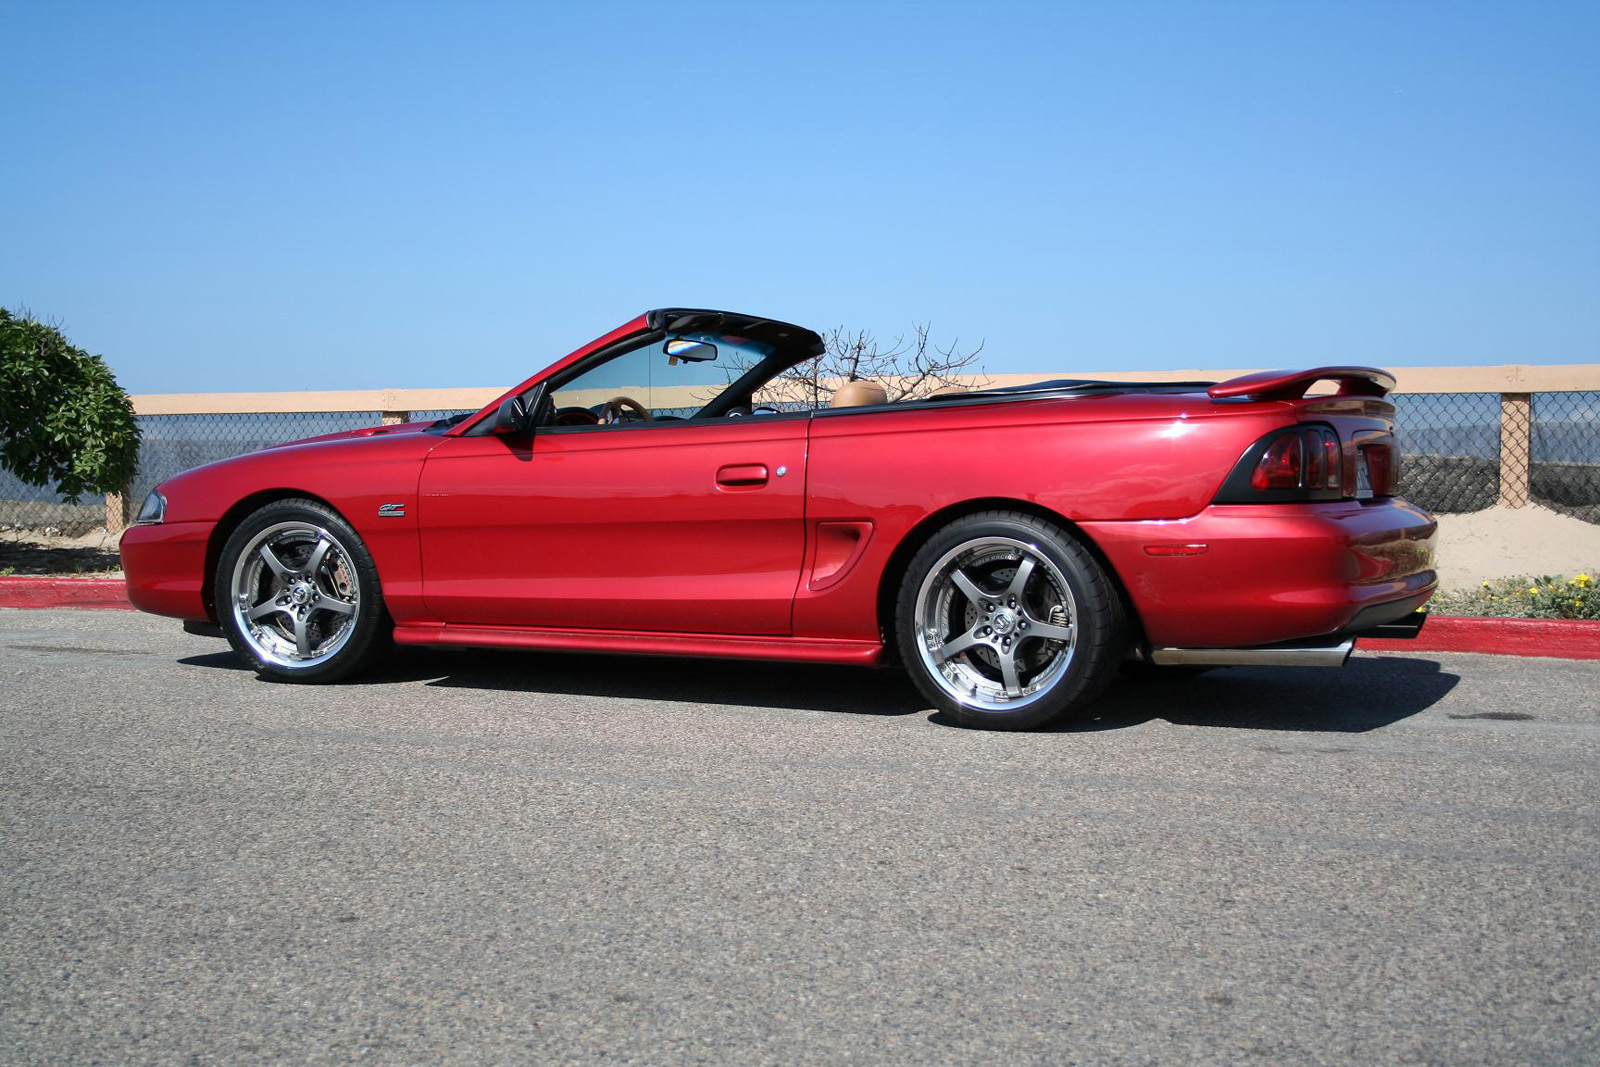 1995 gt convertible ford mustang photo gallery shnack com